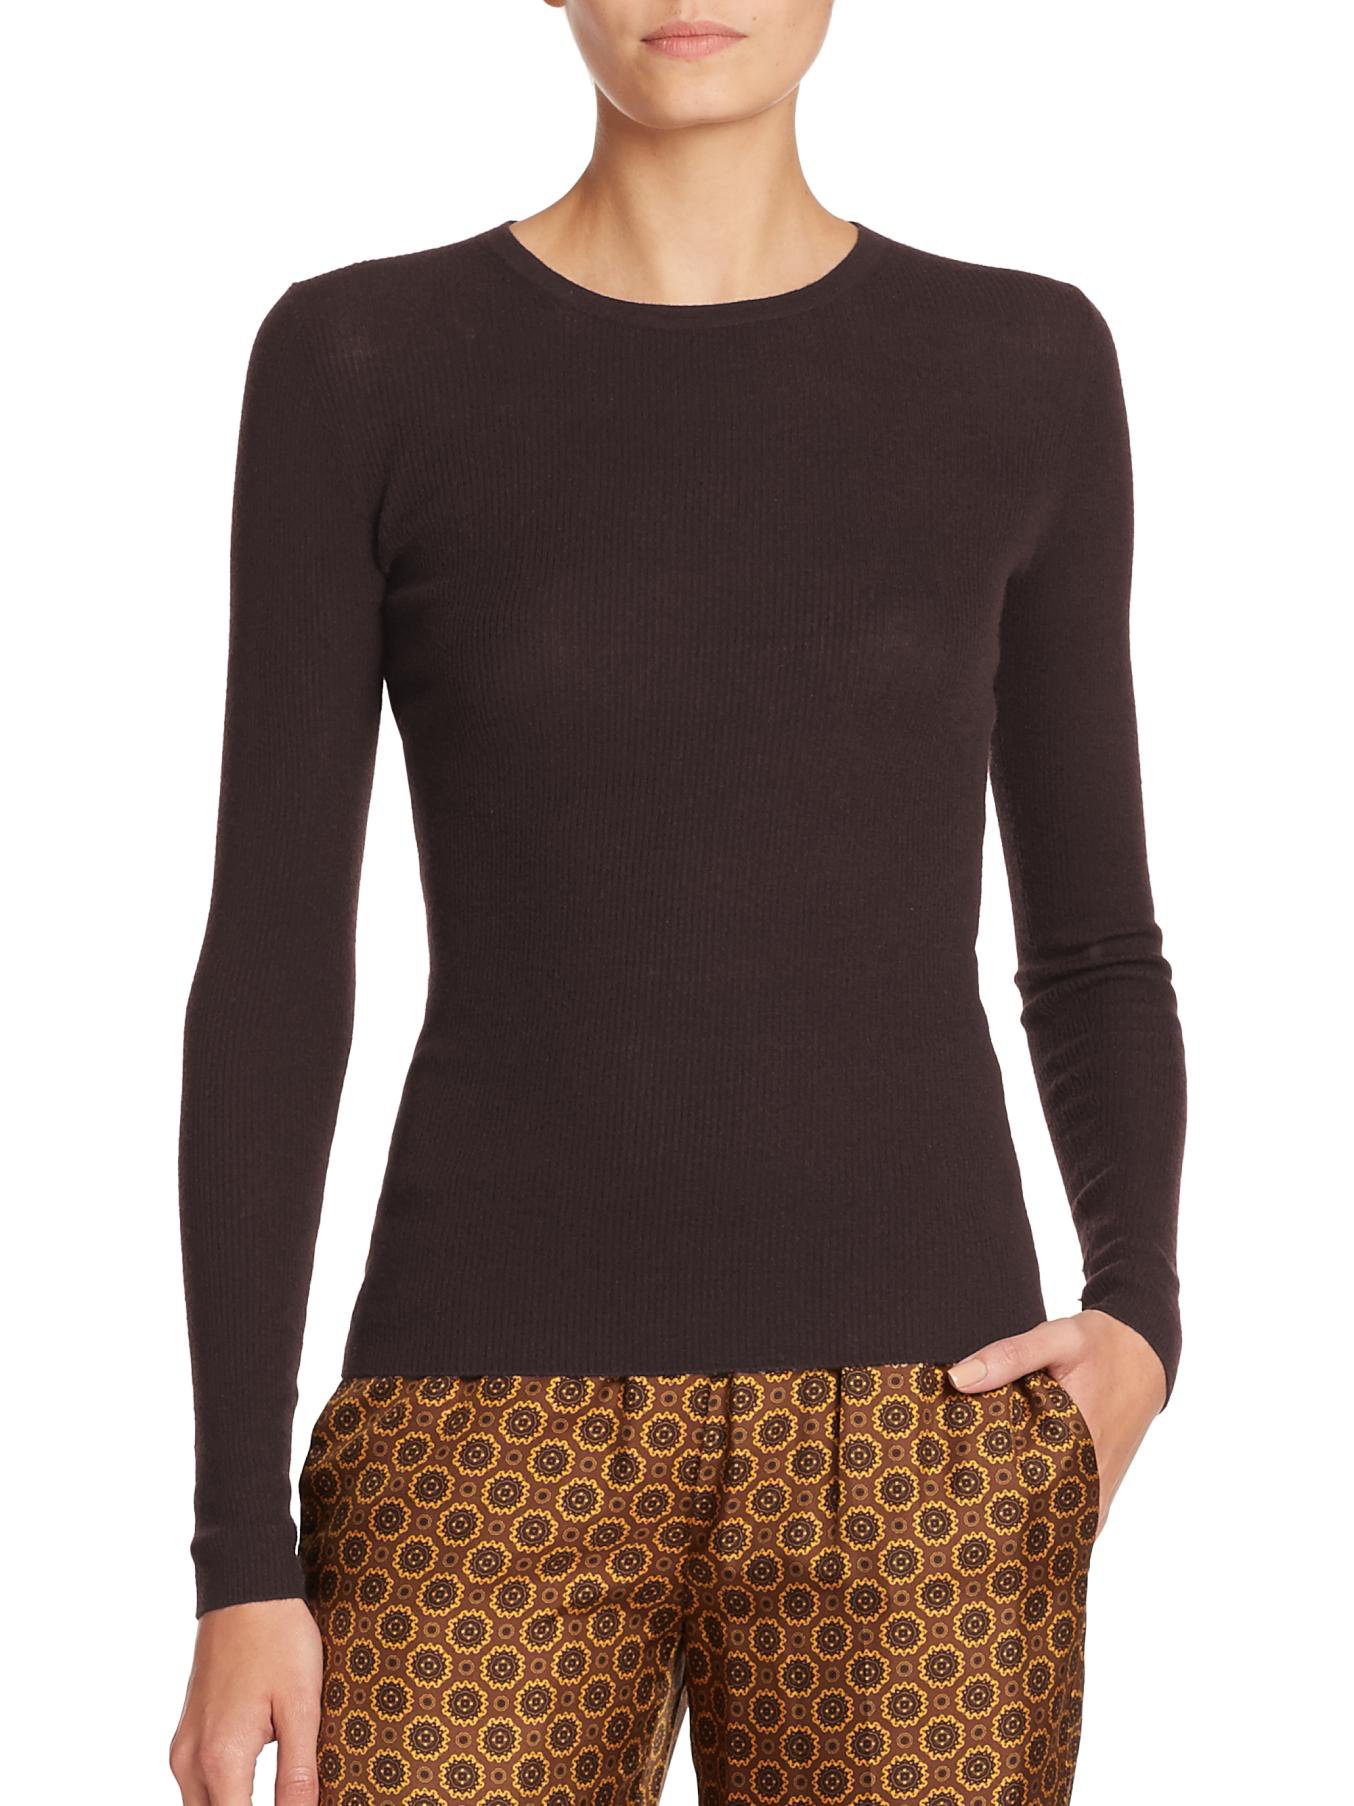 Michael kors Featherweight Ribbed Cashmere Sweater in Brown | Lyst